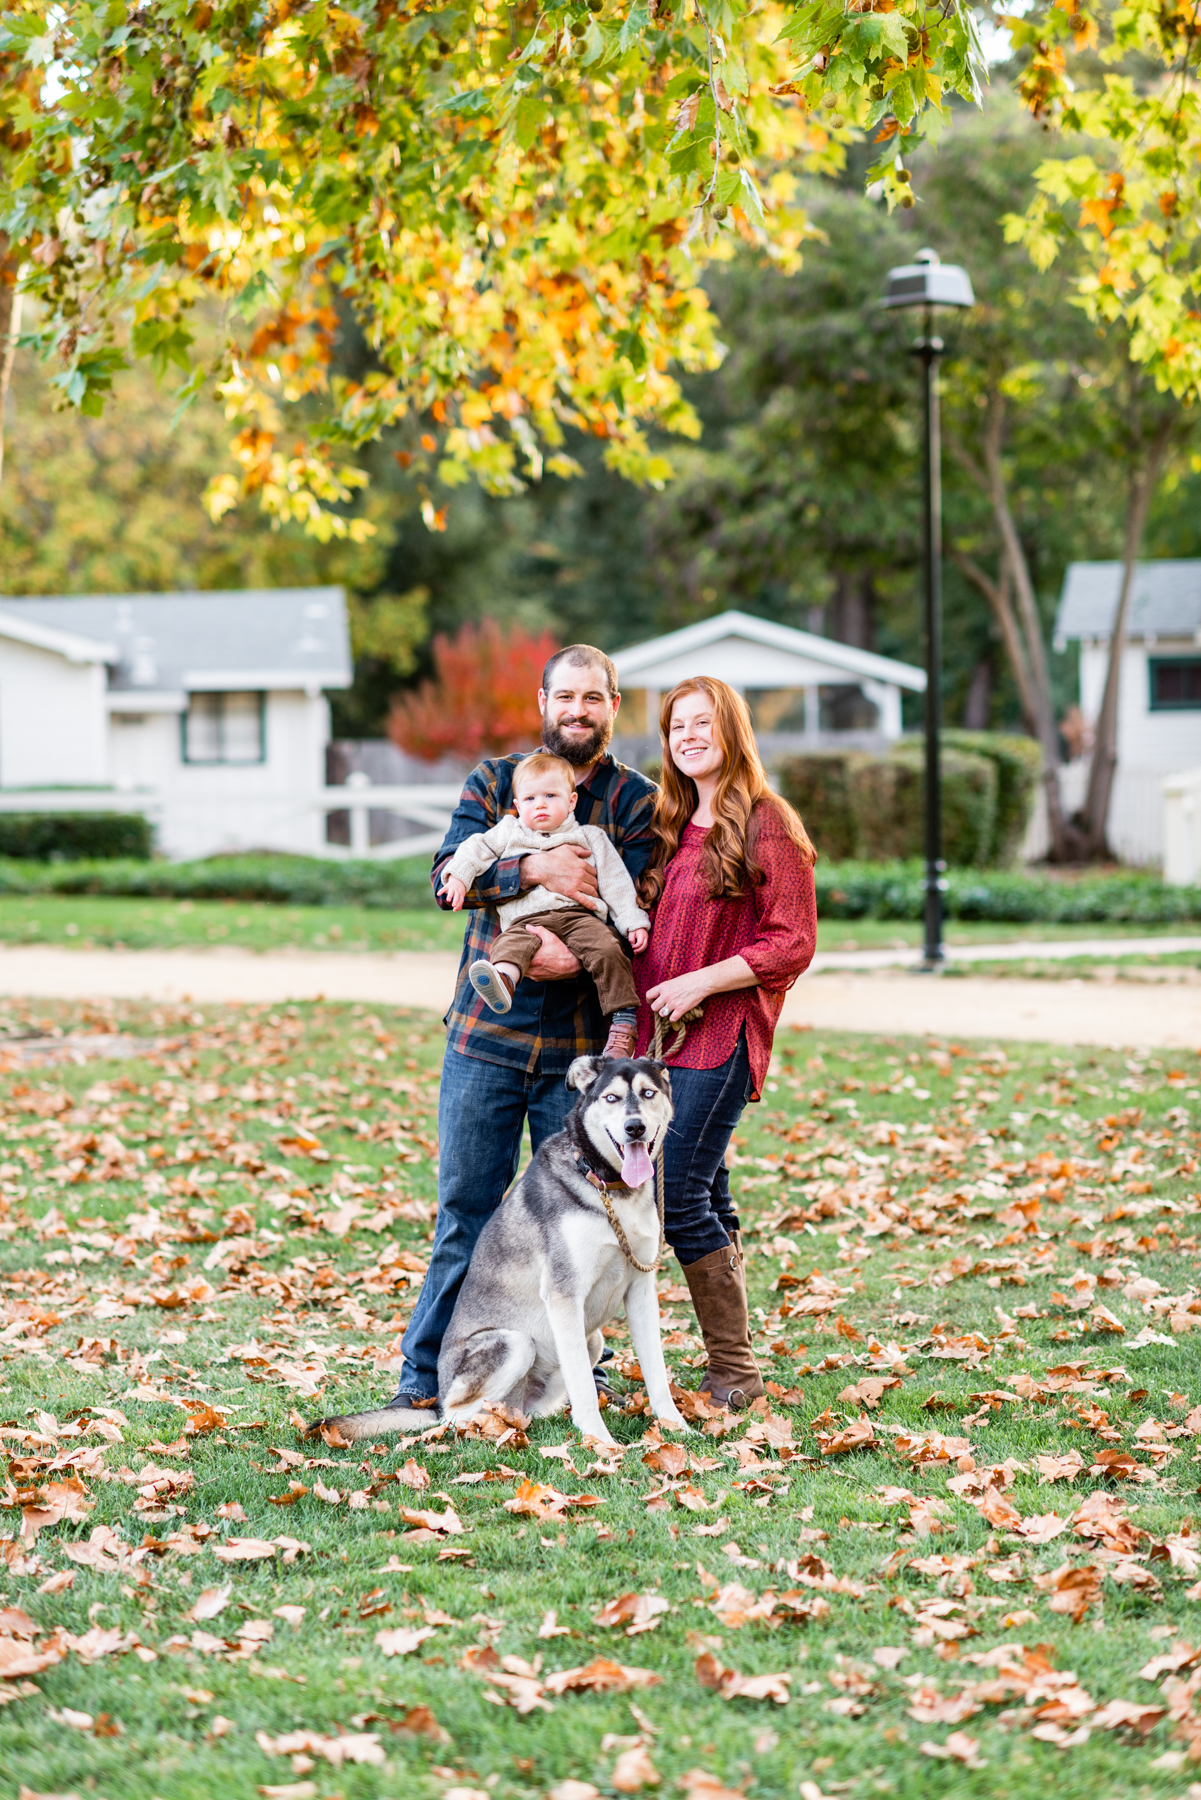 Family Portrait with their dog at Hap Magee Park in Danville, CA.